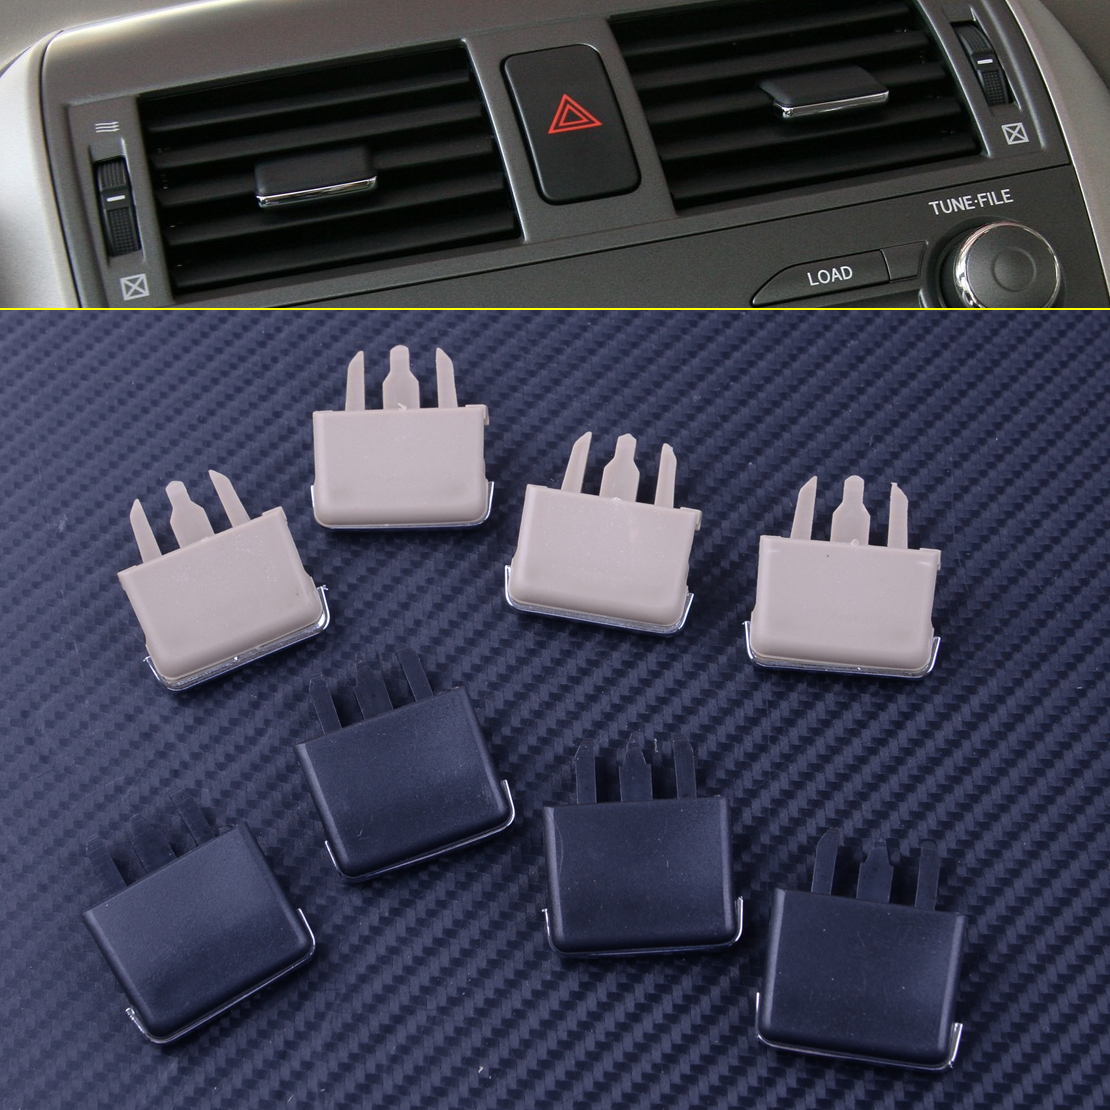 4Pcs/lot Car Center Dash A/C Vent Louvre Blade Slice Air Conditioning Leaf Clip For Toyota Corolla 2004 - 2008 2009 2010 image